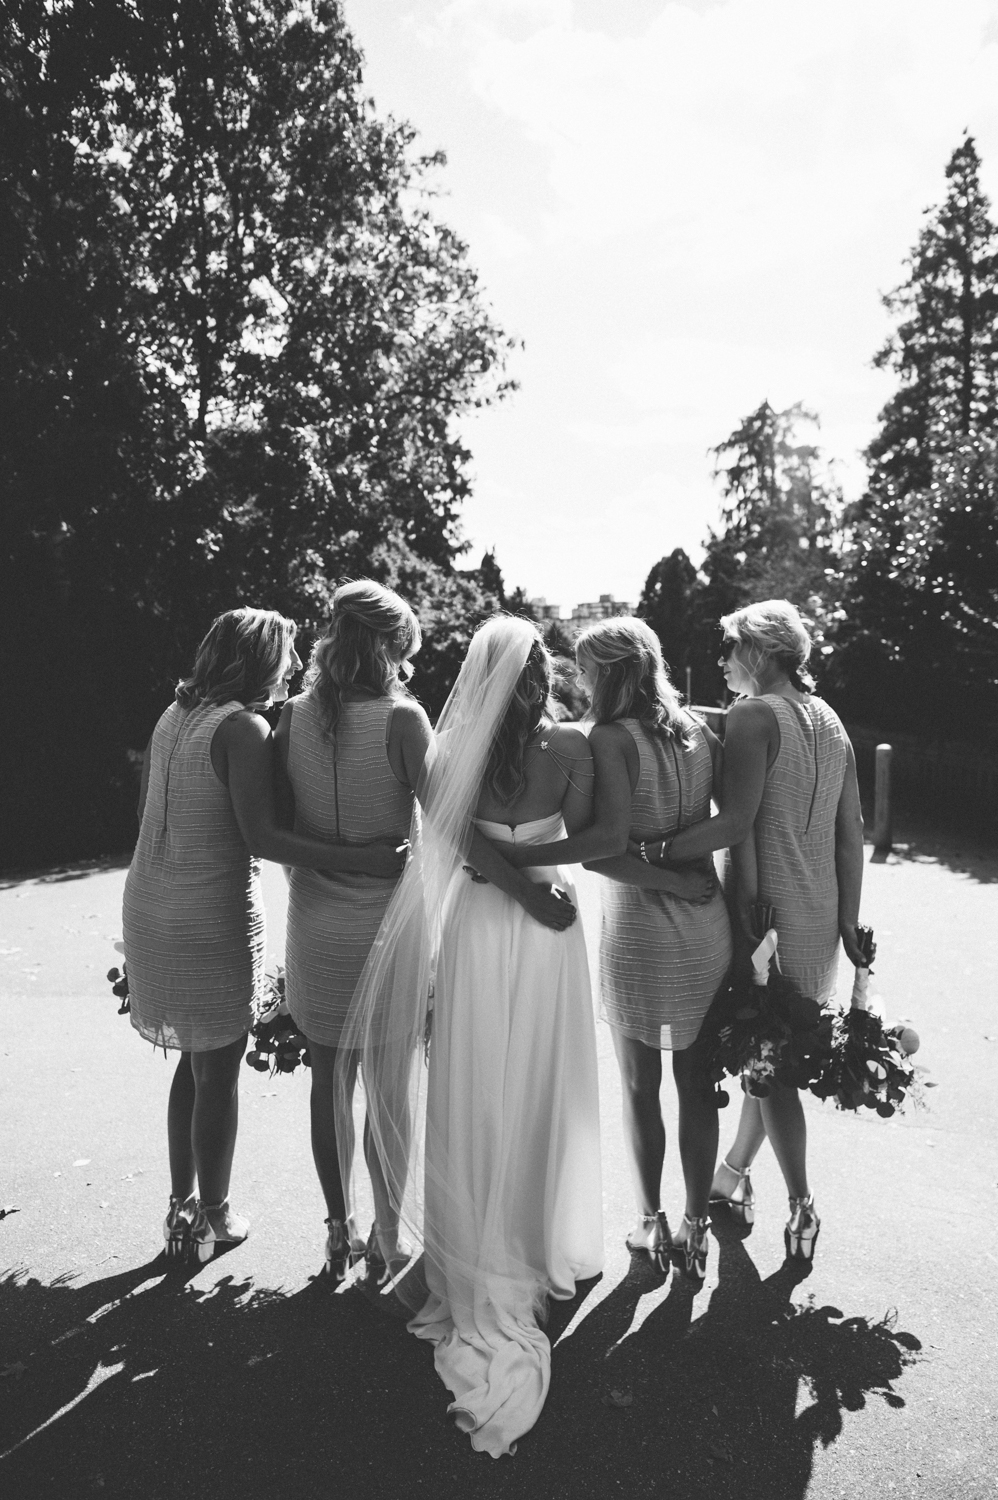 Stanely Park Wedding, Vancouver BC-Jessika Hunter-47.JPG